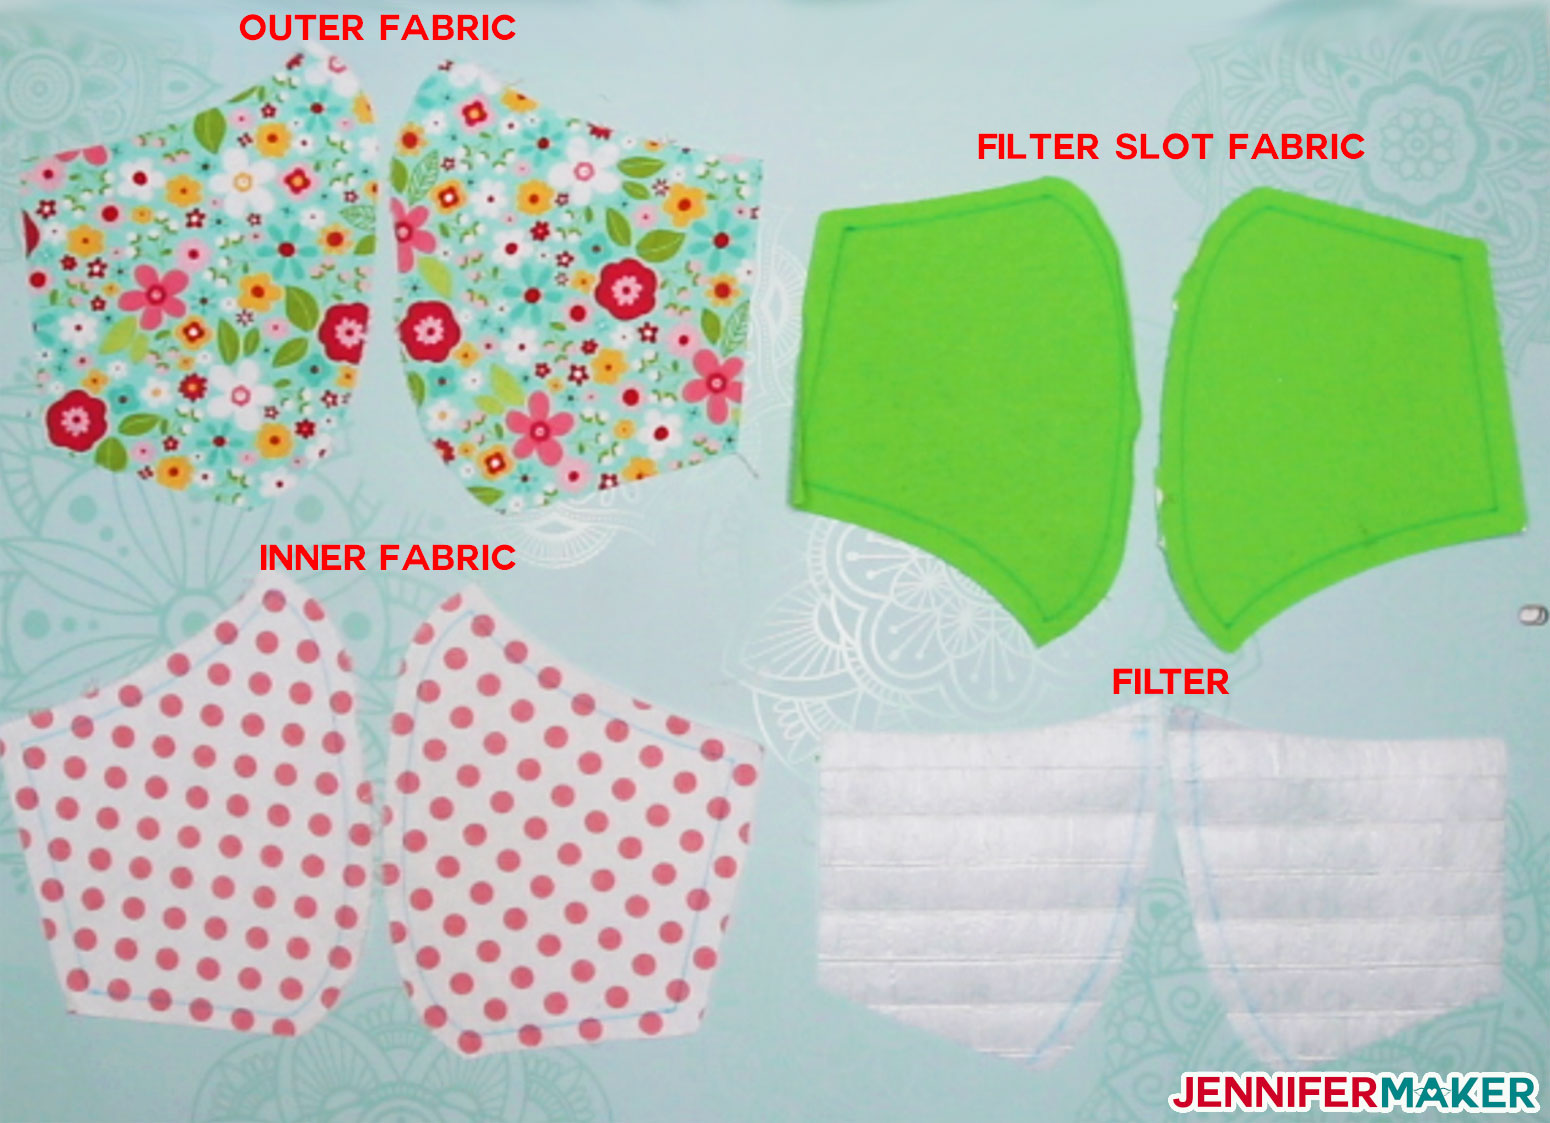 The DIY face mask pattern pieces -- outer fabric, inner fabric, filter slot fabric, and filter